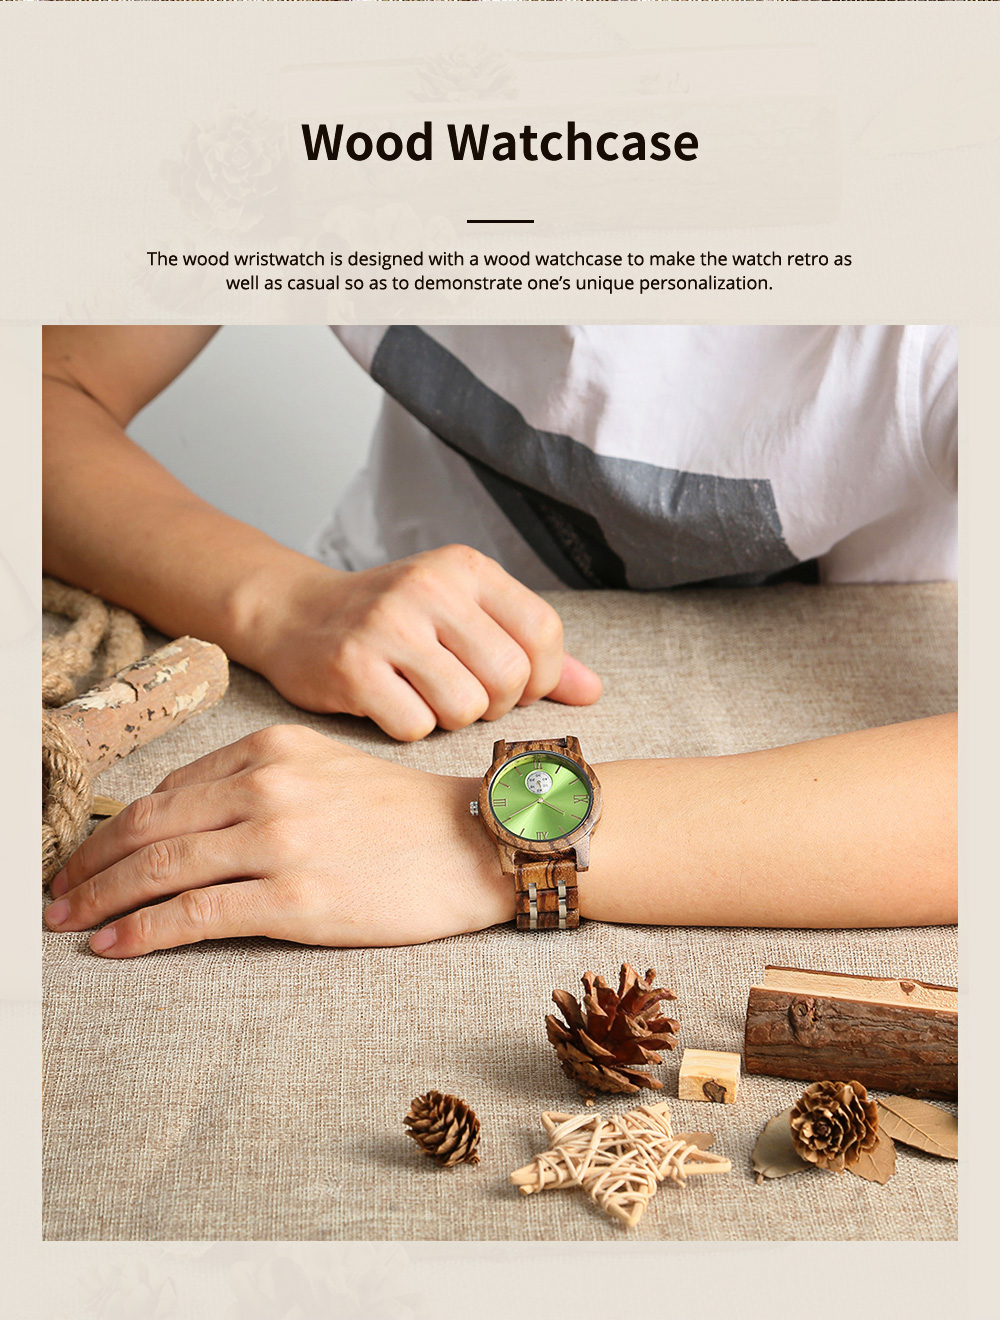 Casual Wood Watch with Wood Watchcase and Bracelet for Unisex Use Waterproof Japanese Quartz Movement Wood-steel-mixed Wristwatch 1